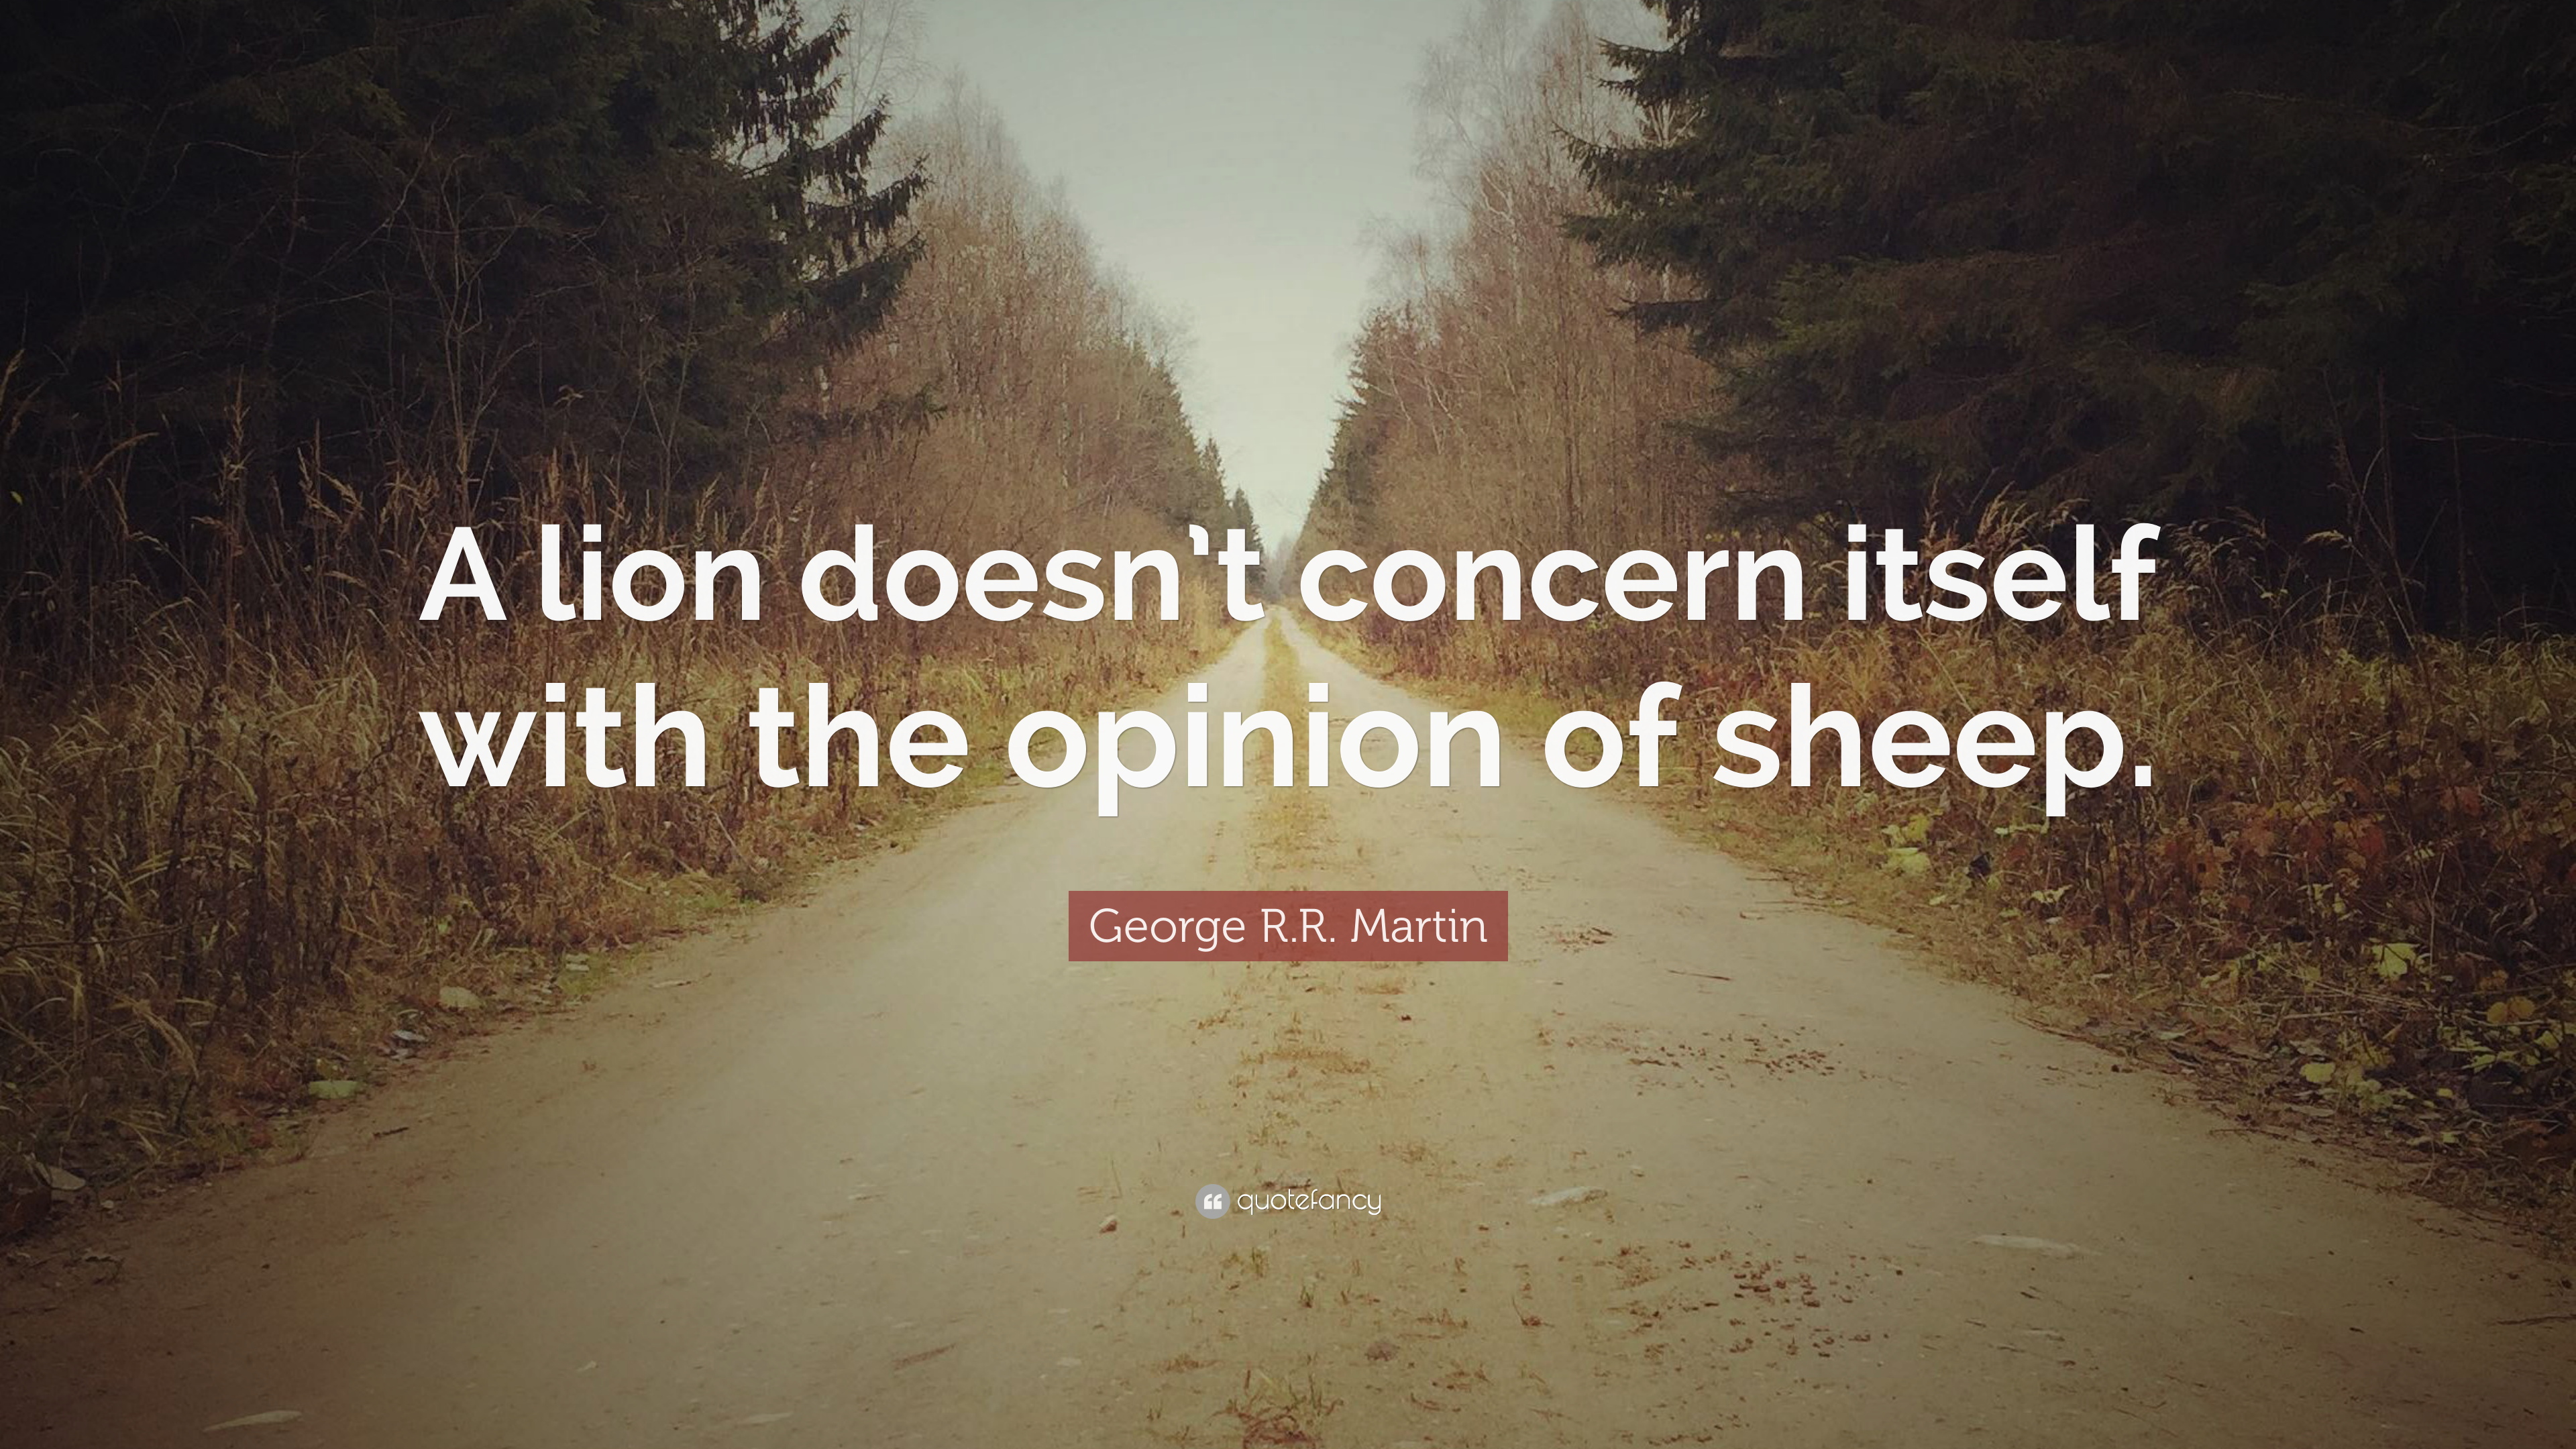 Jane Austen Quotes Wallpaper George R R Martin Quote A Lion Doesn T Concern Itself